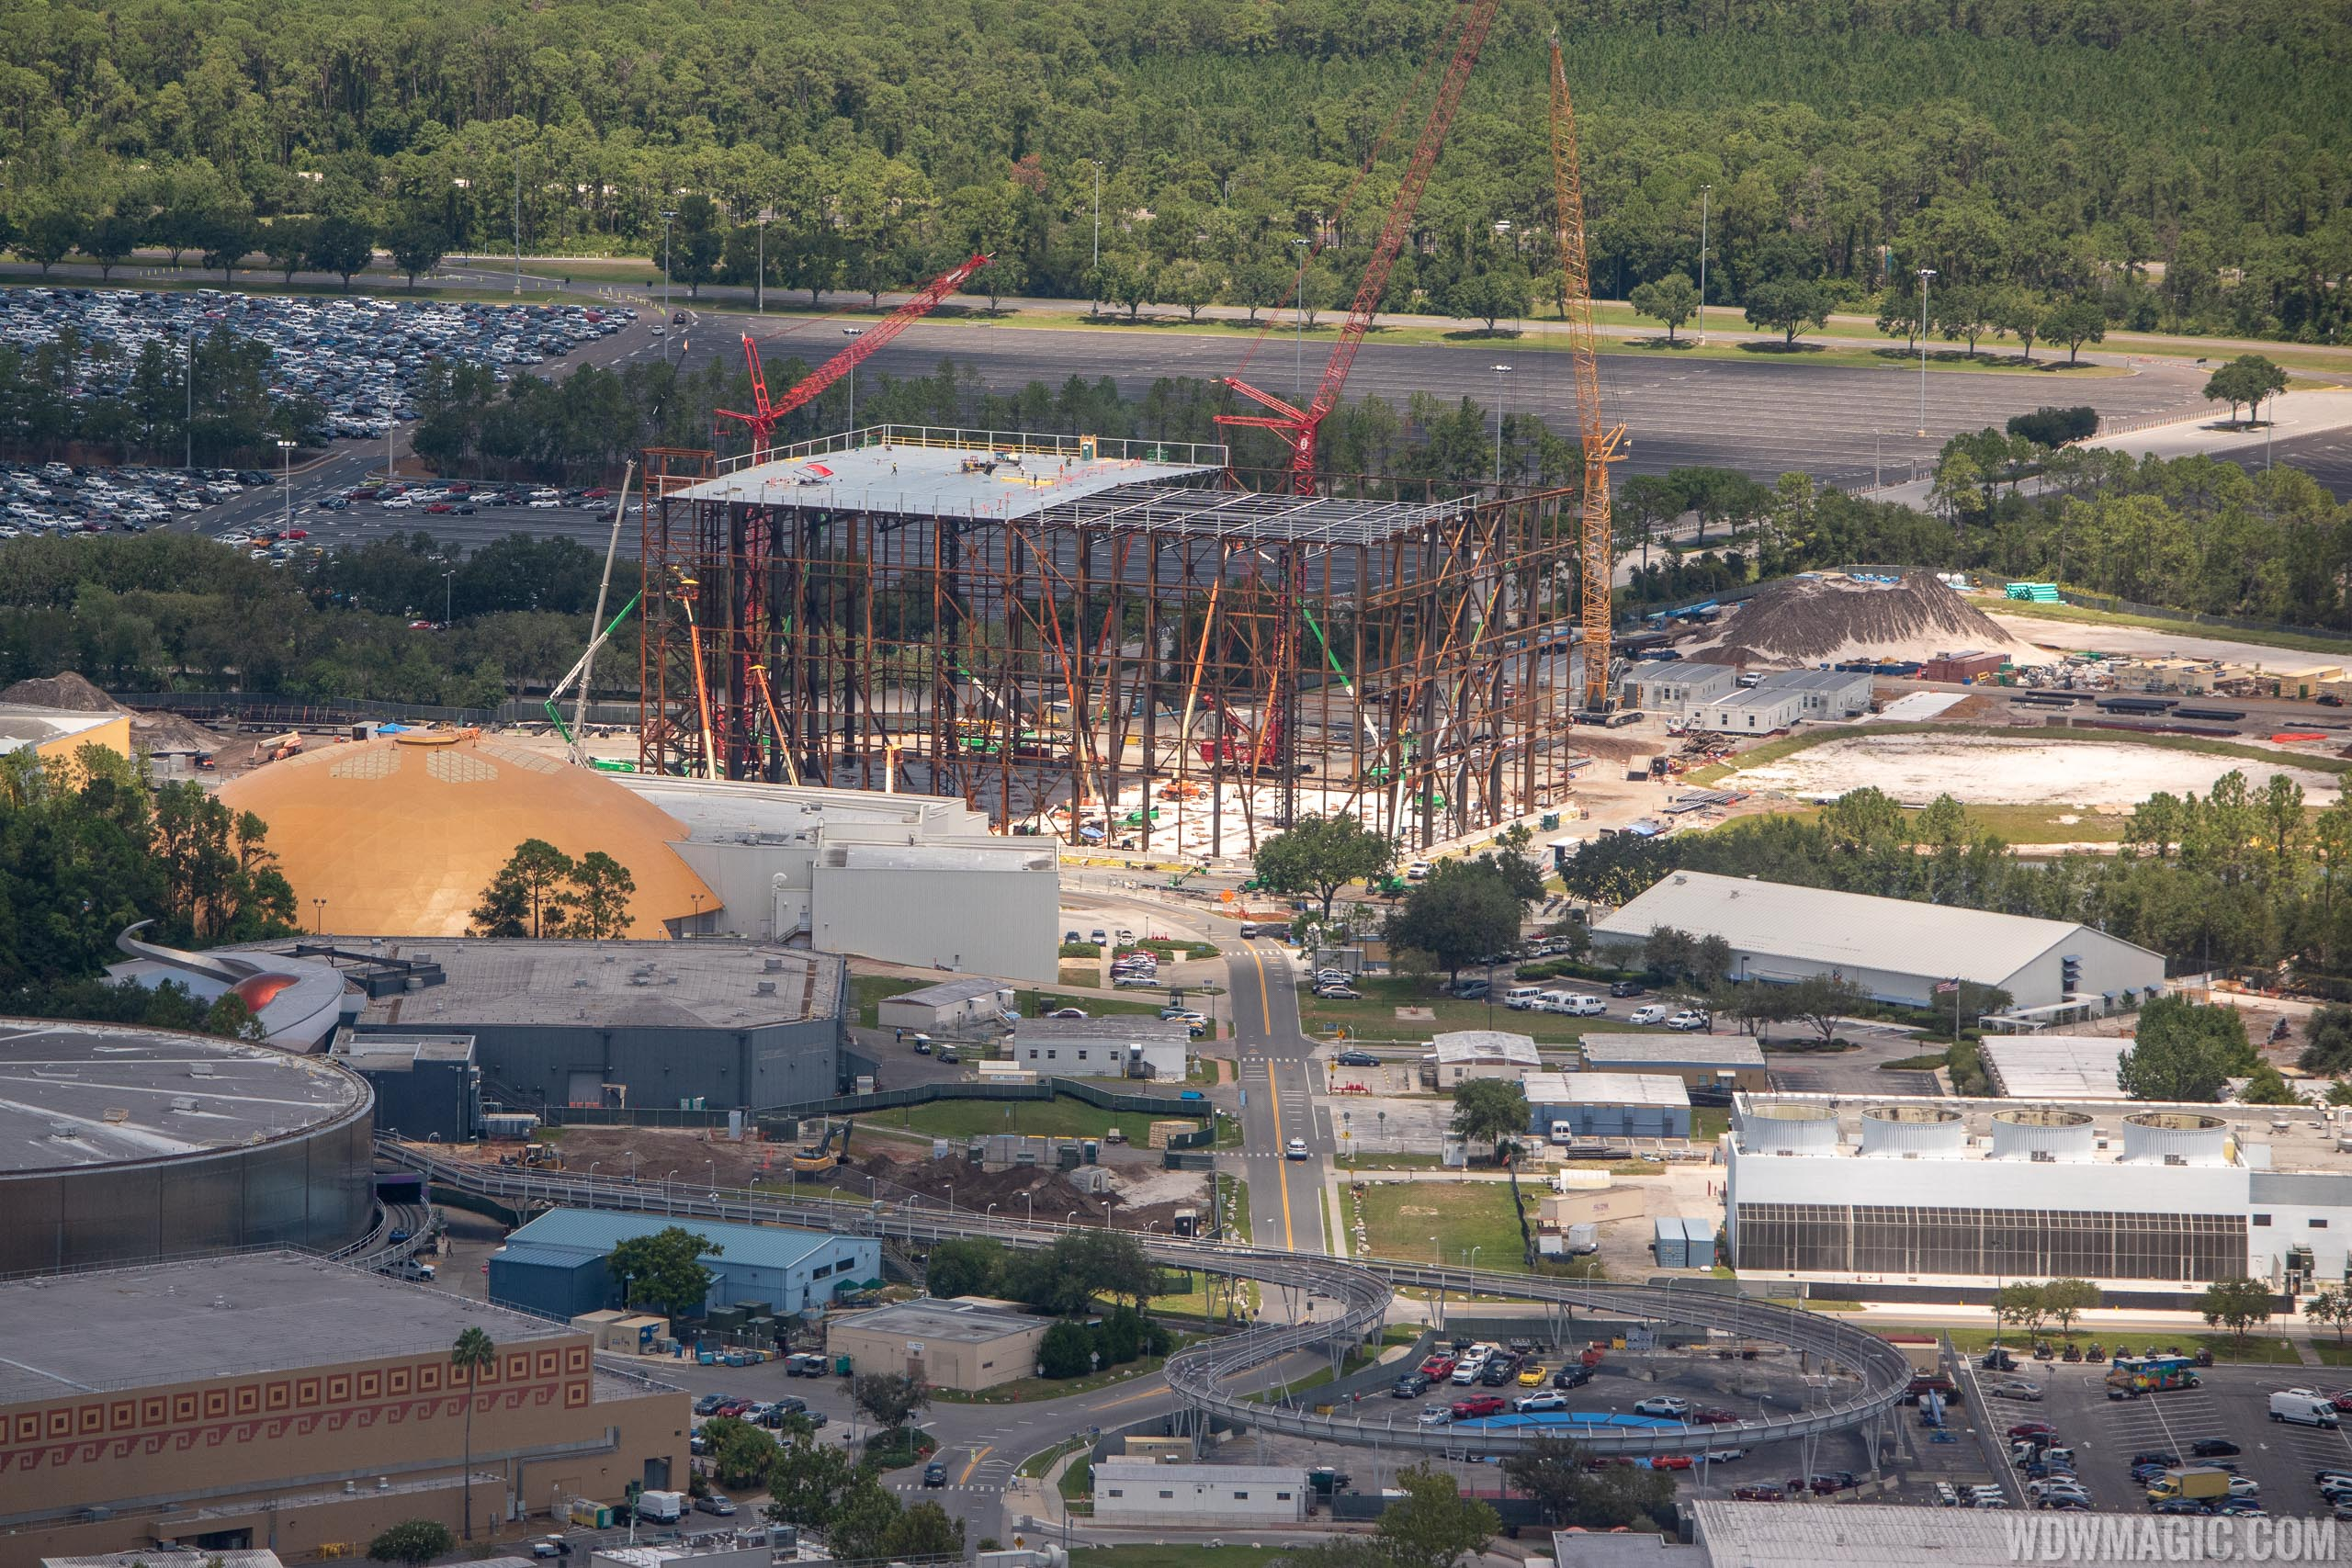 Guardians of the Galaxy construction aerial views - August 2018